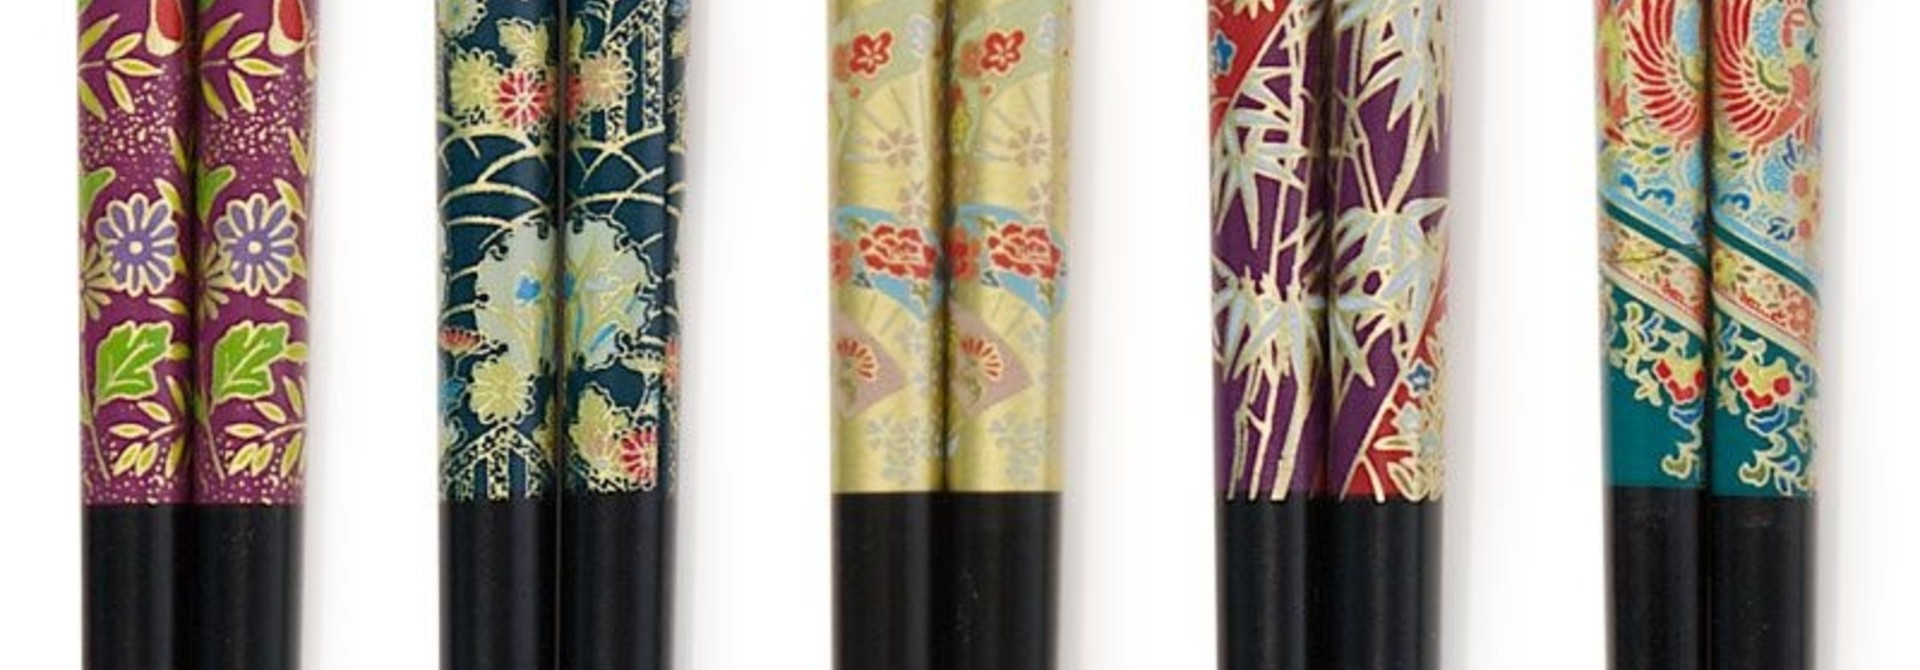 Assorted Chopsticks set (4) - Kimono Print